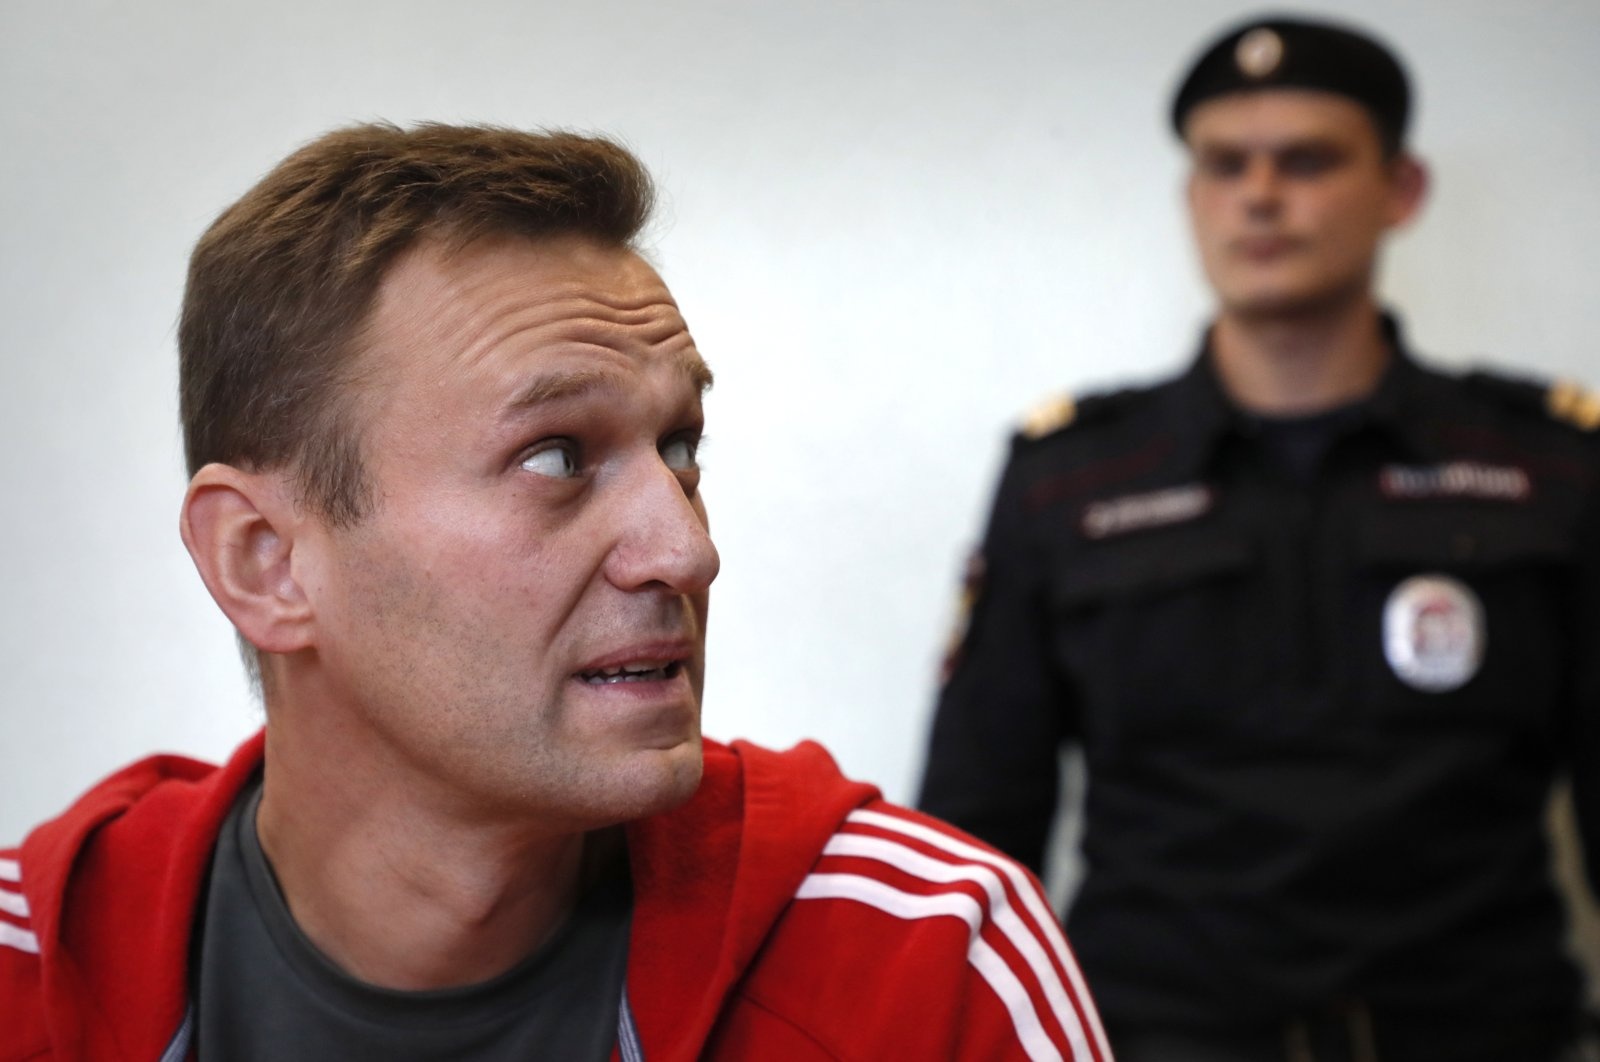 Russian opposition leader Alexei Navalny (L) attends a hearing at the Simonovsky district court in Moscow, Russia, on Aug. 22, 2019. (EPA Photo)